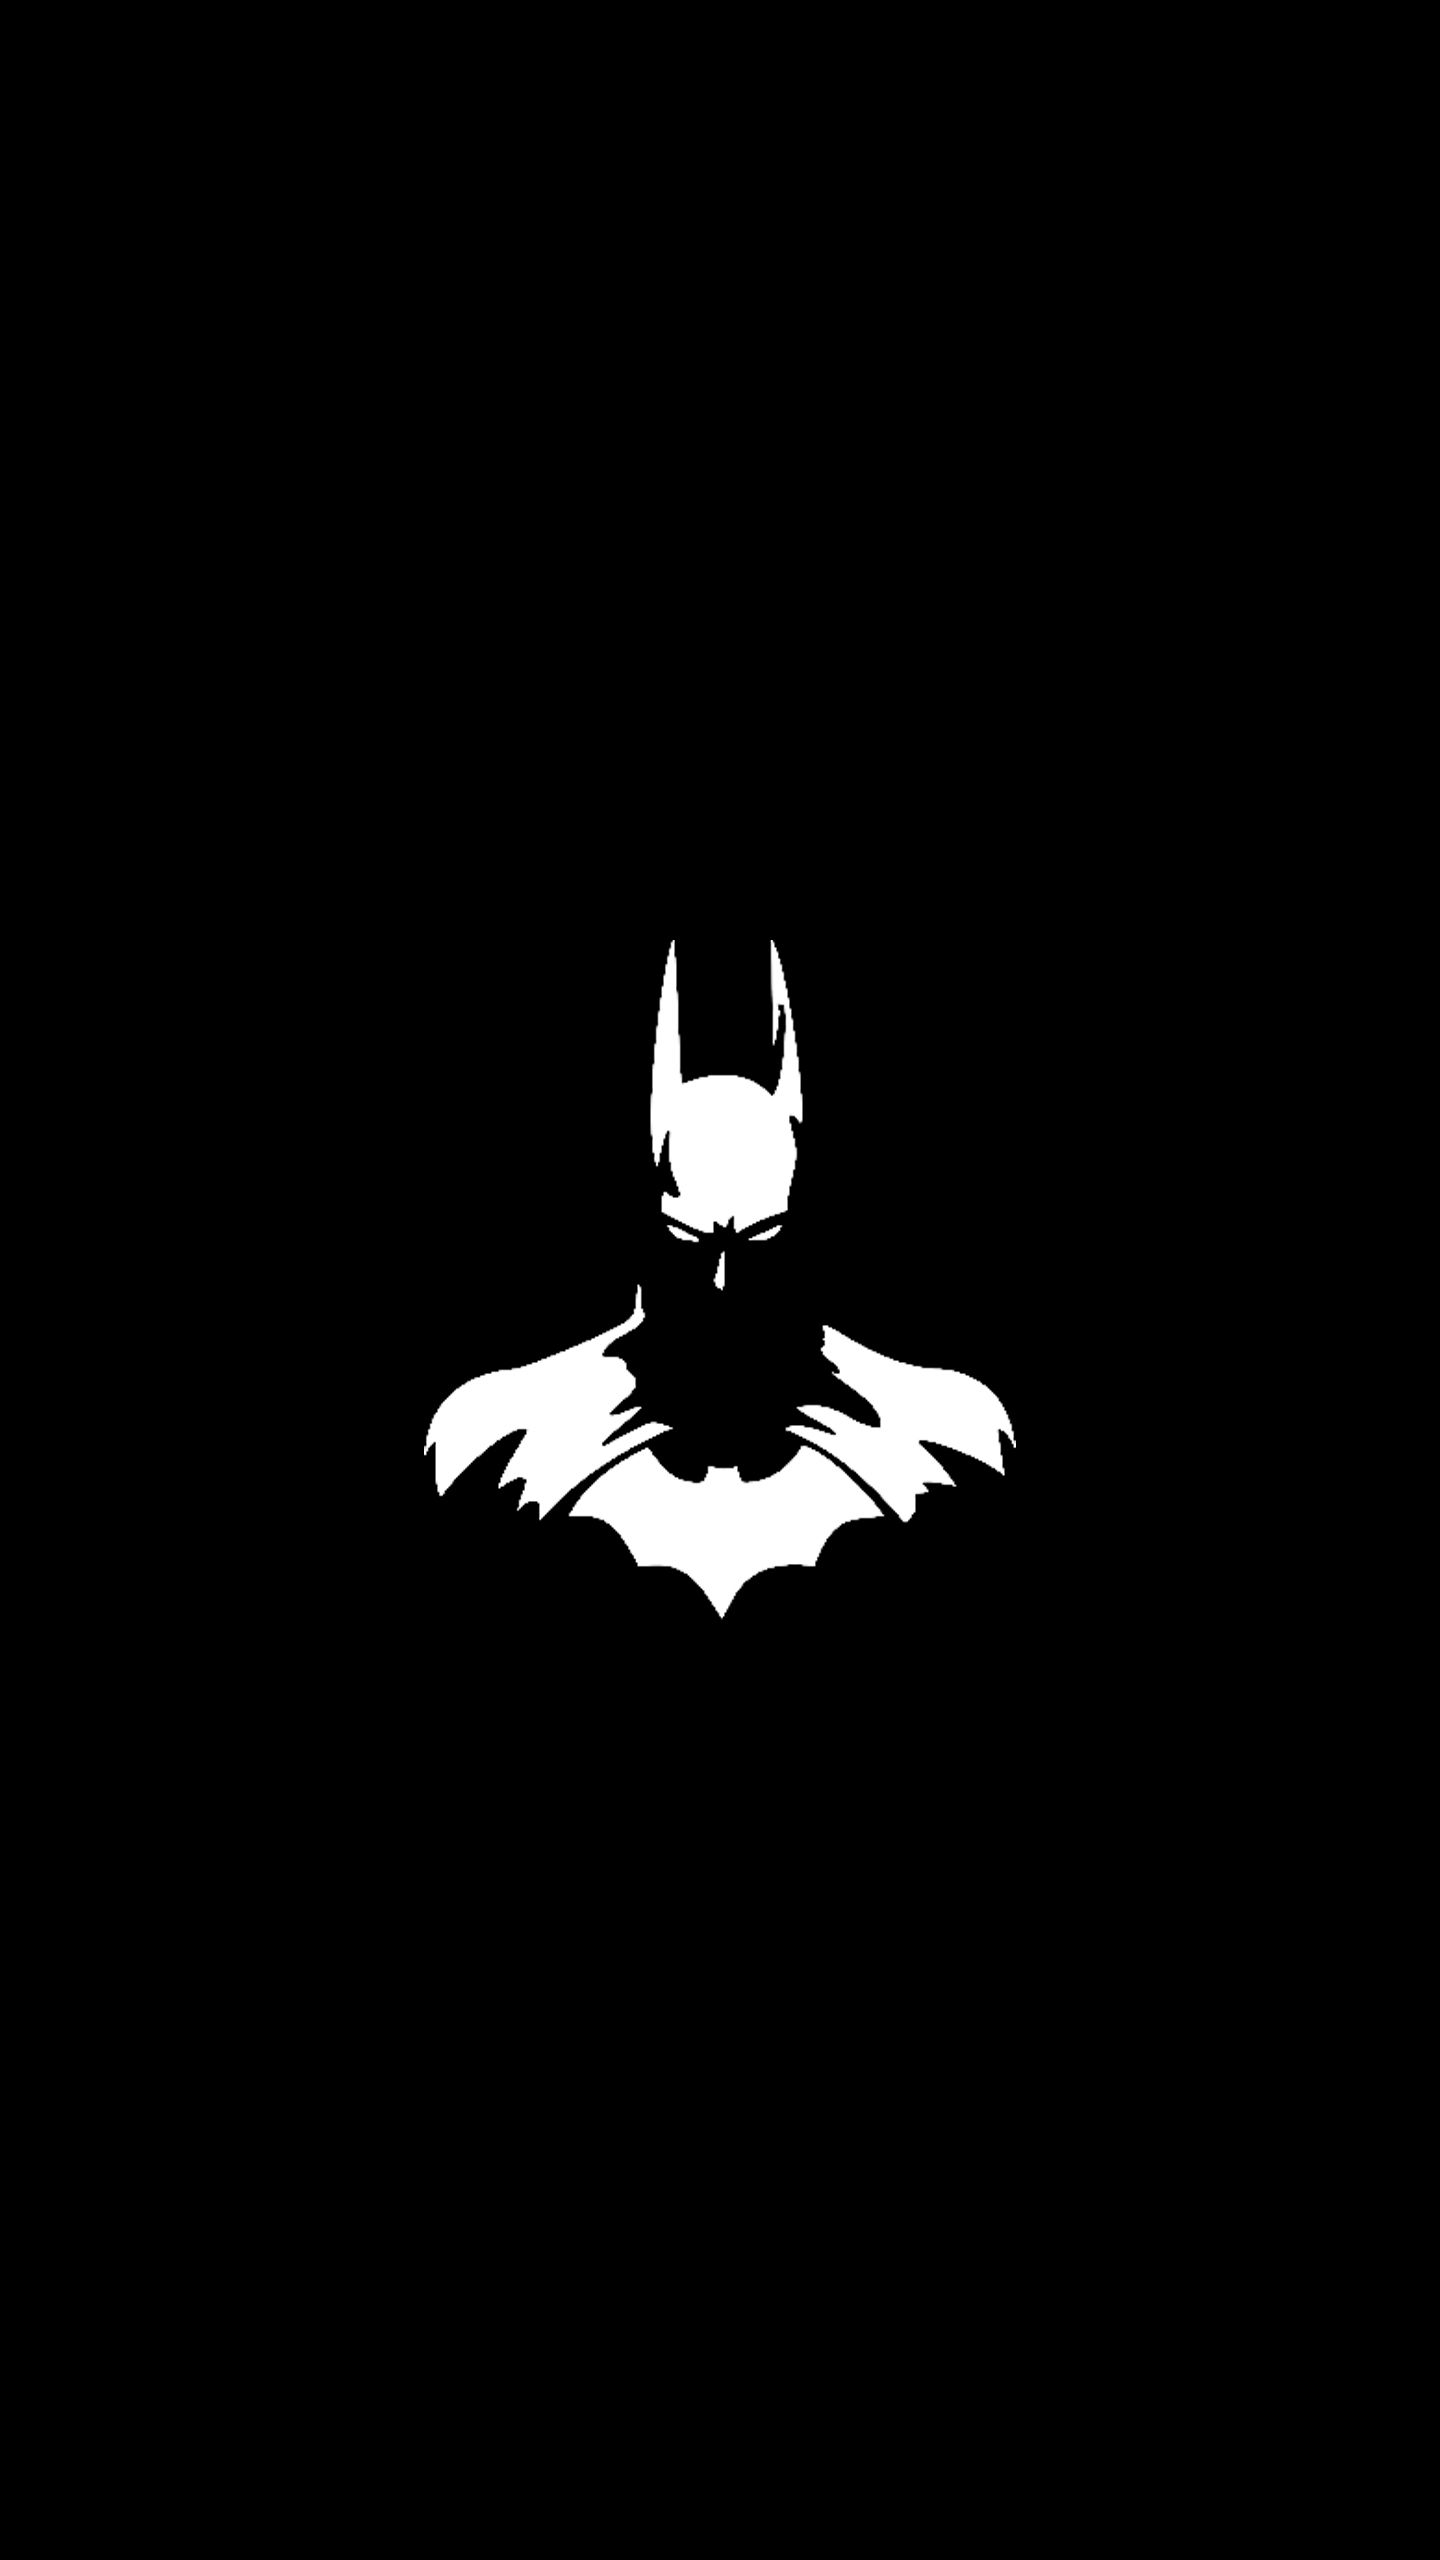 batman amoled lockscreen homescreen wallpapers batman wallpaper